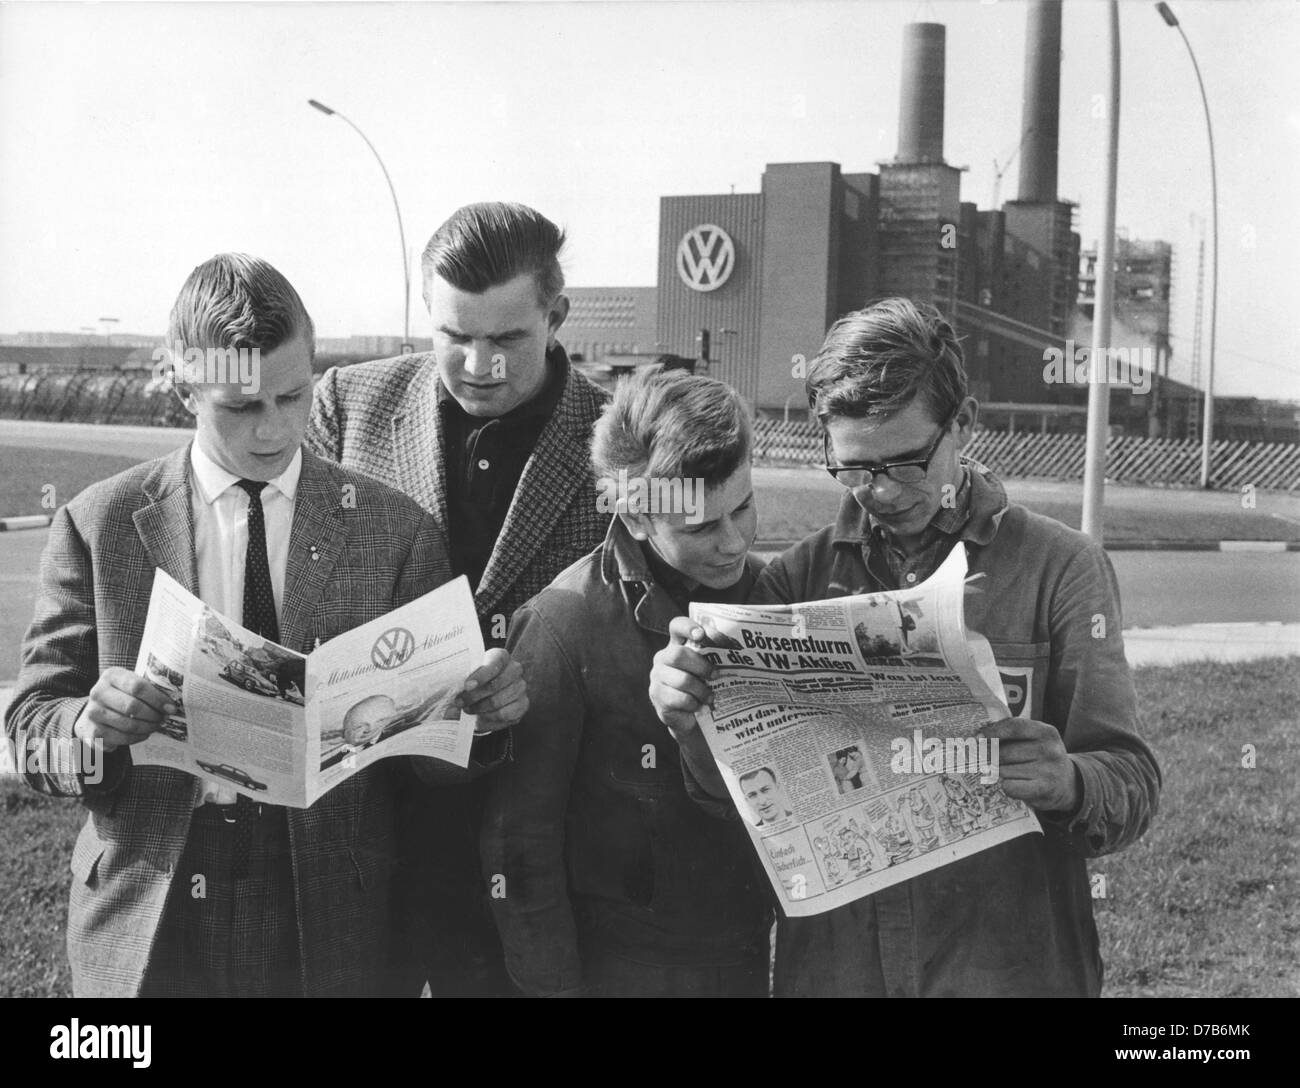 VW workers read a newspaper for VW shareholders on the 11th of April in 1961. Stock Photo